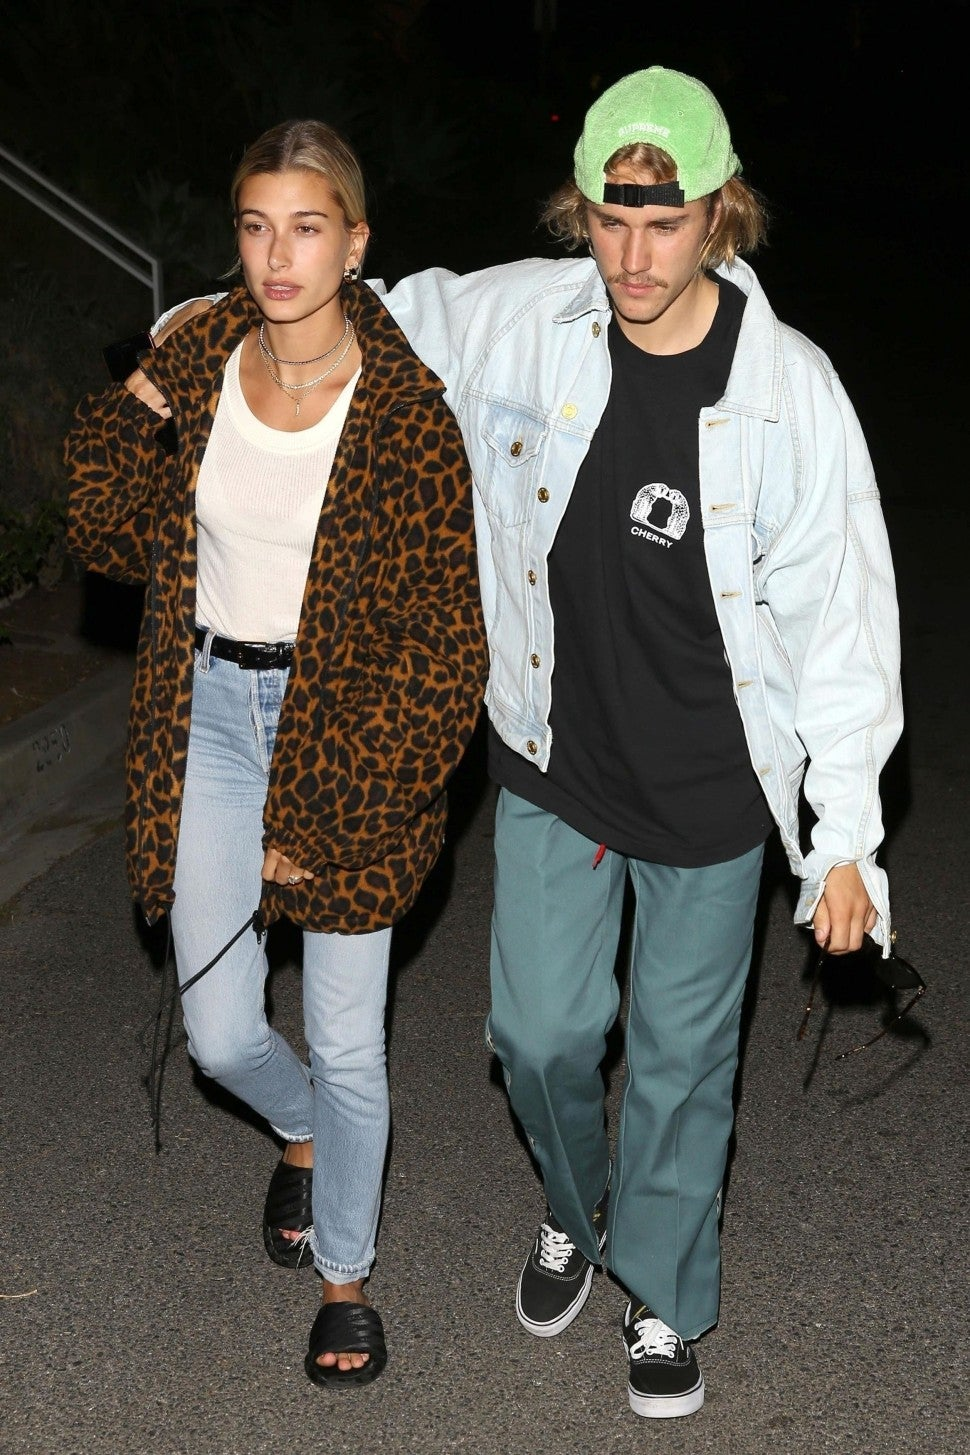 Hailey Baldwin in leopard jacket and Justin Bieber